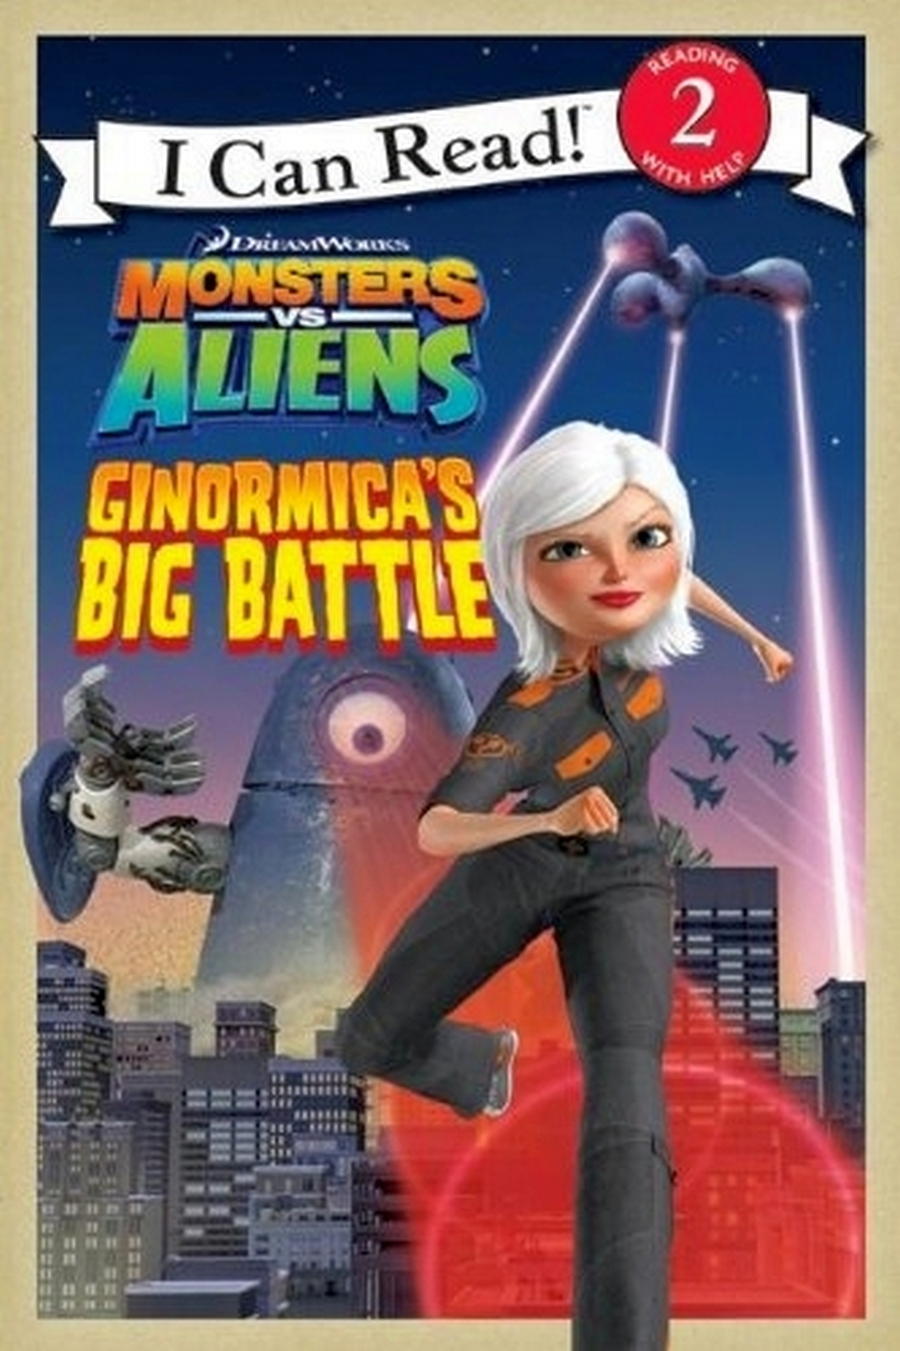 Ginormica monsters vs aliens sex film